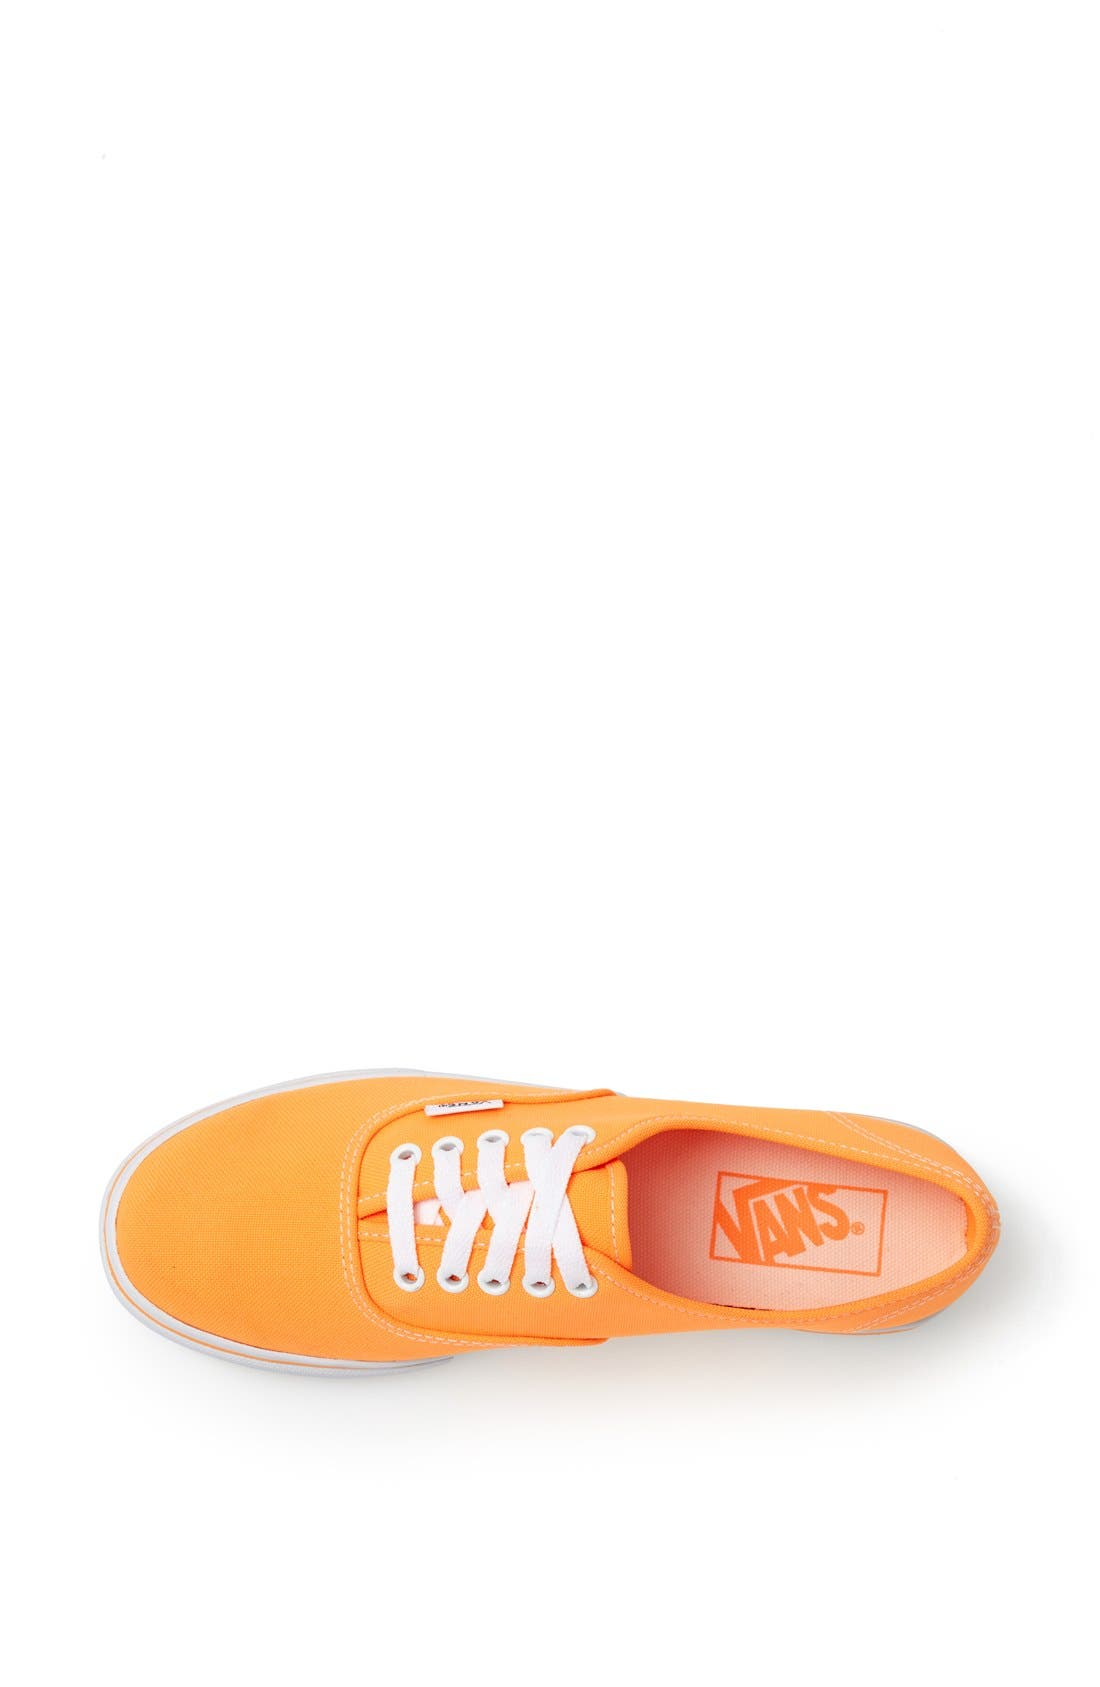 Alternate Image 3  - Vans 'Authentic Lo Pro - Neon' Sneaker (Women)